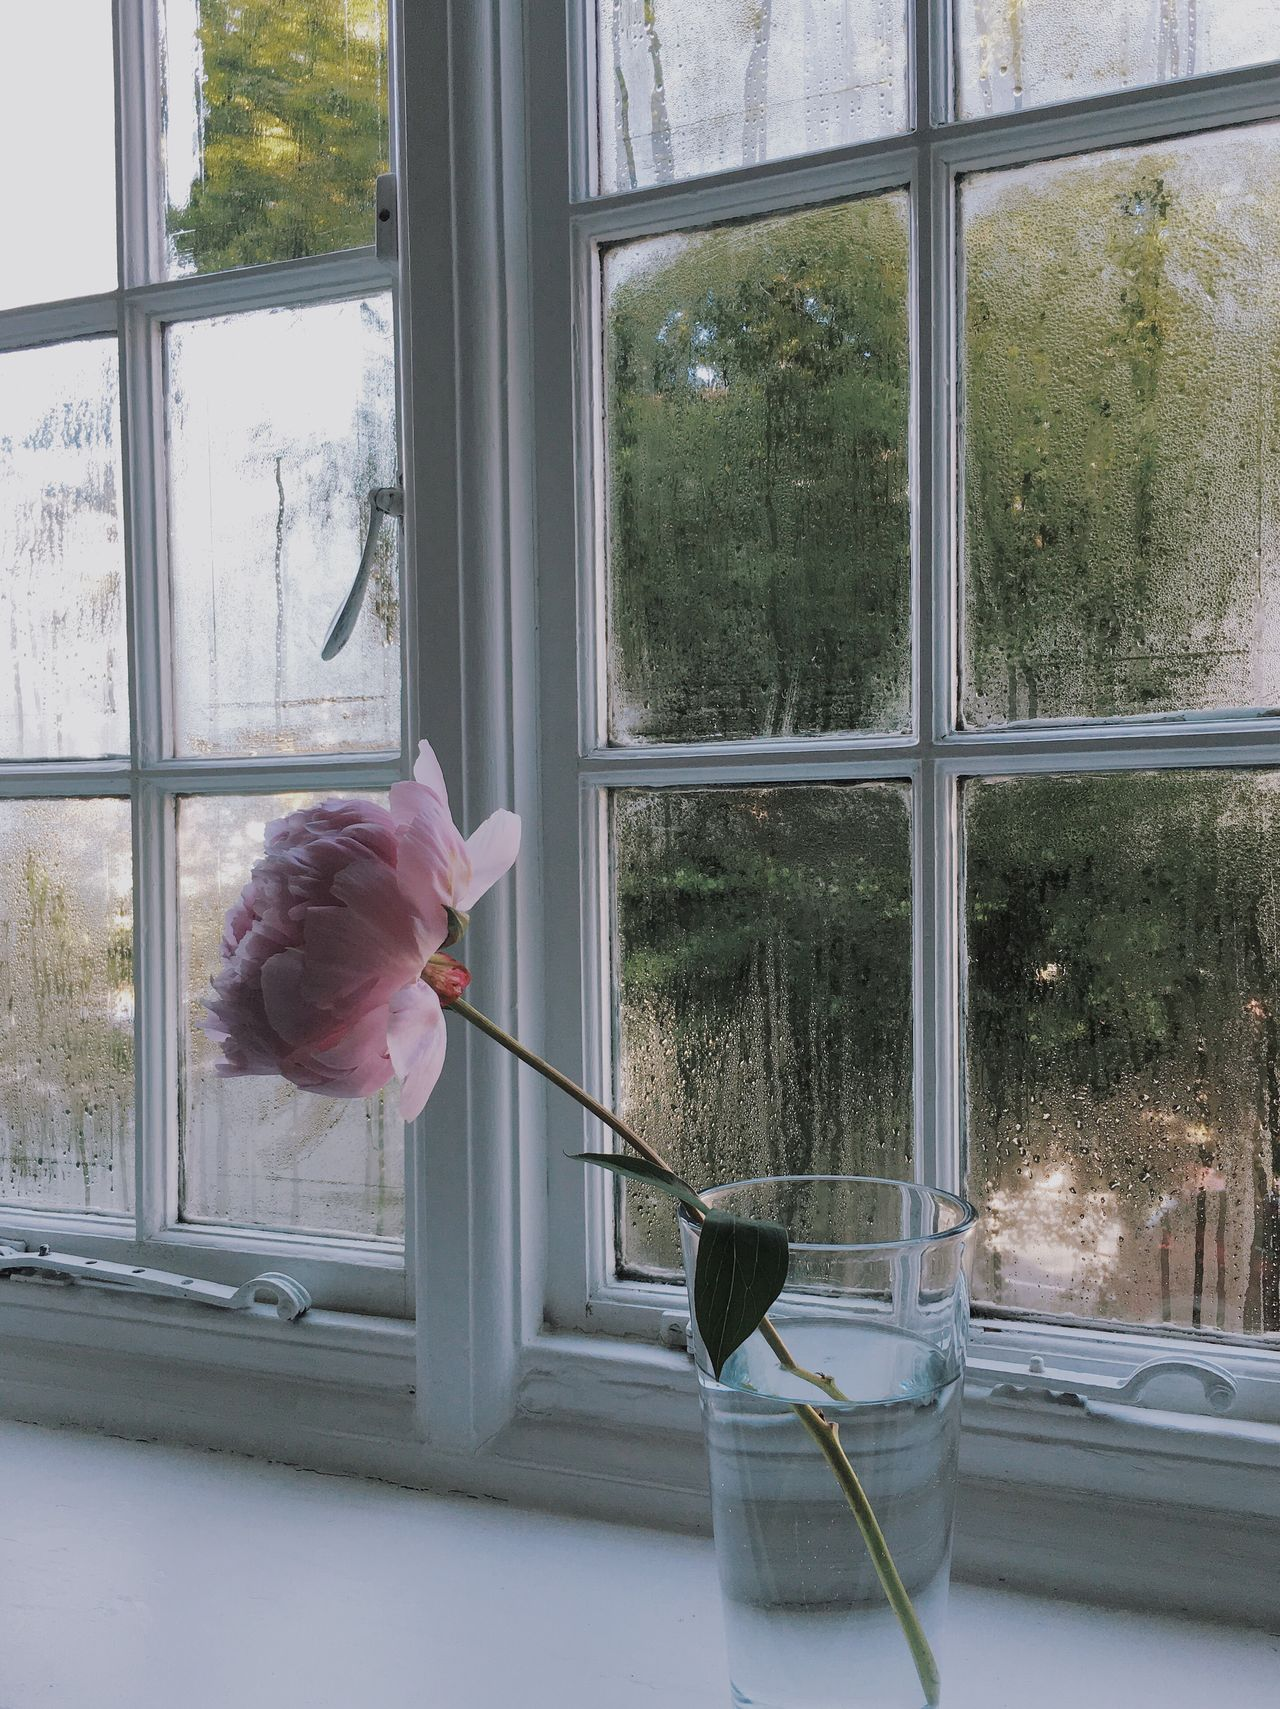 My Favorite Place Flowers Humid London Window Window View Flower Collection Flowers, Nature And Beauty Peony  PeonyBloom Pink Color Pink Flower Green Color Green Leaves Greenery Atmospheric Mood Atmosphere Simplicity Window Reflections Shadows & Lights Transparent Glass Domestic Life Window Frame Freshness